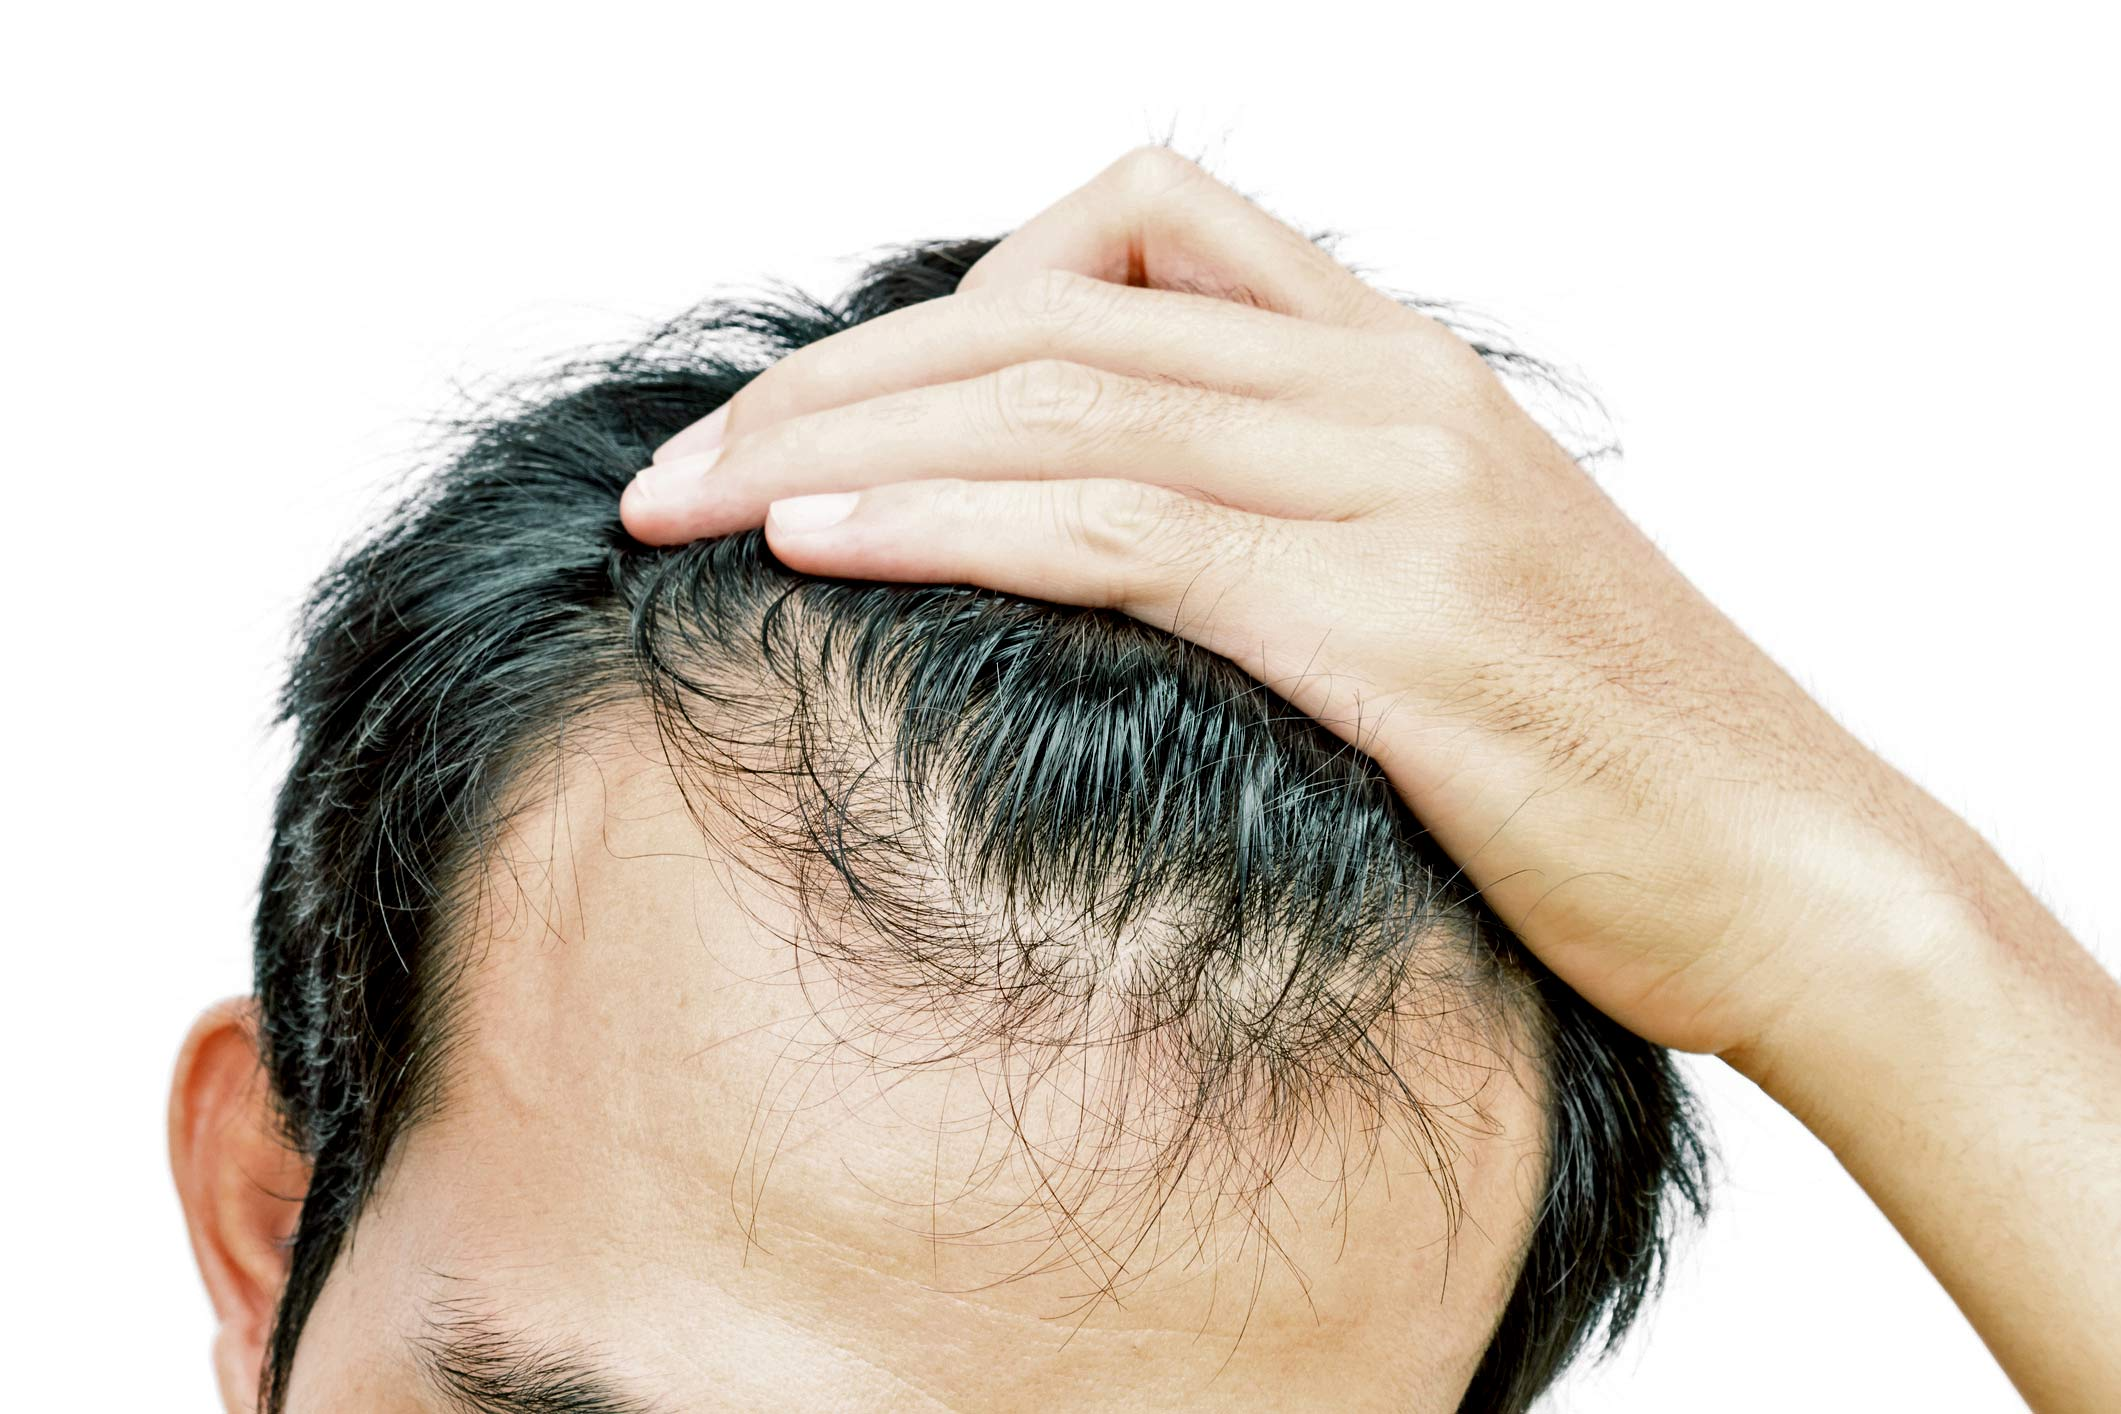 Erectile Dysfunction From Hair Loss Drugs Can Linger Futurity